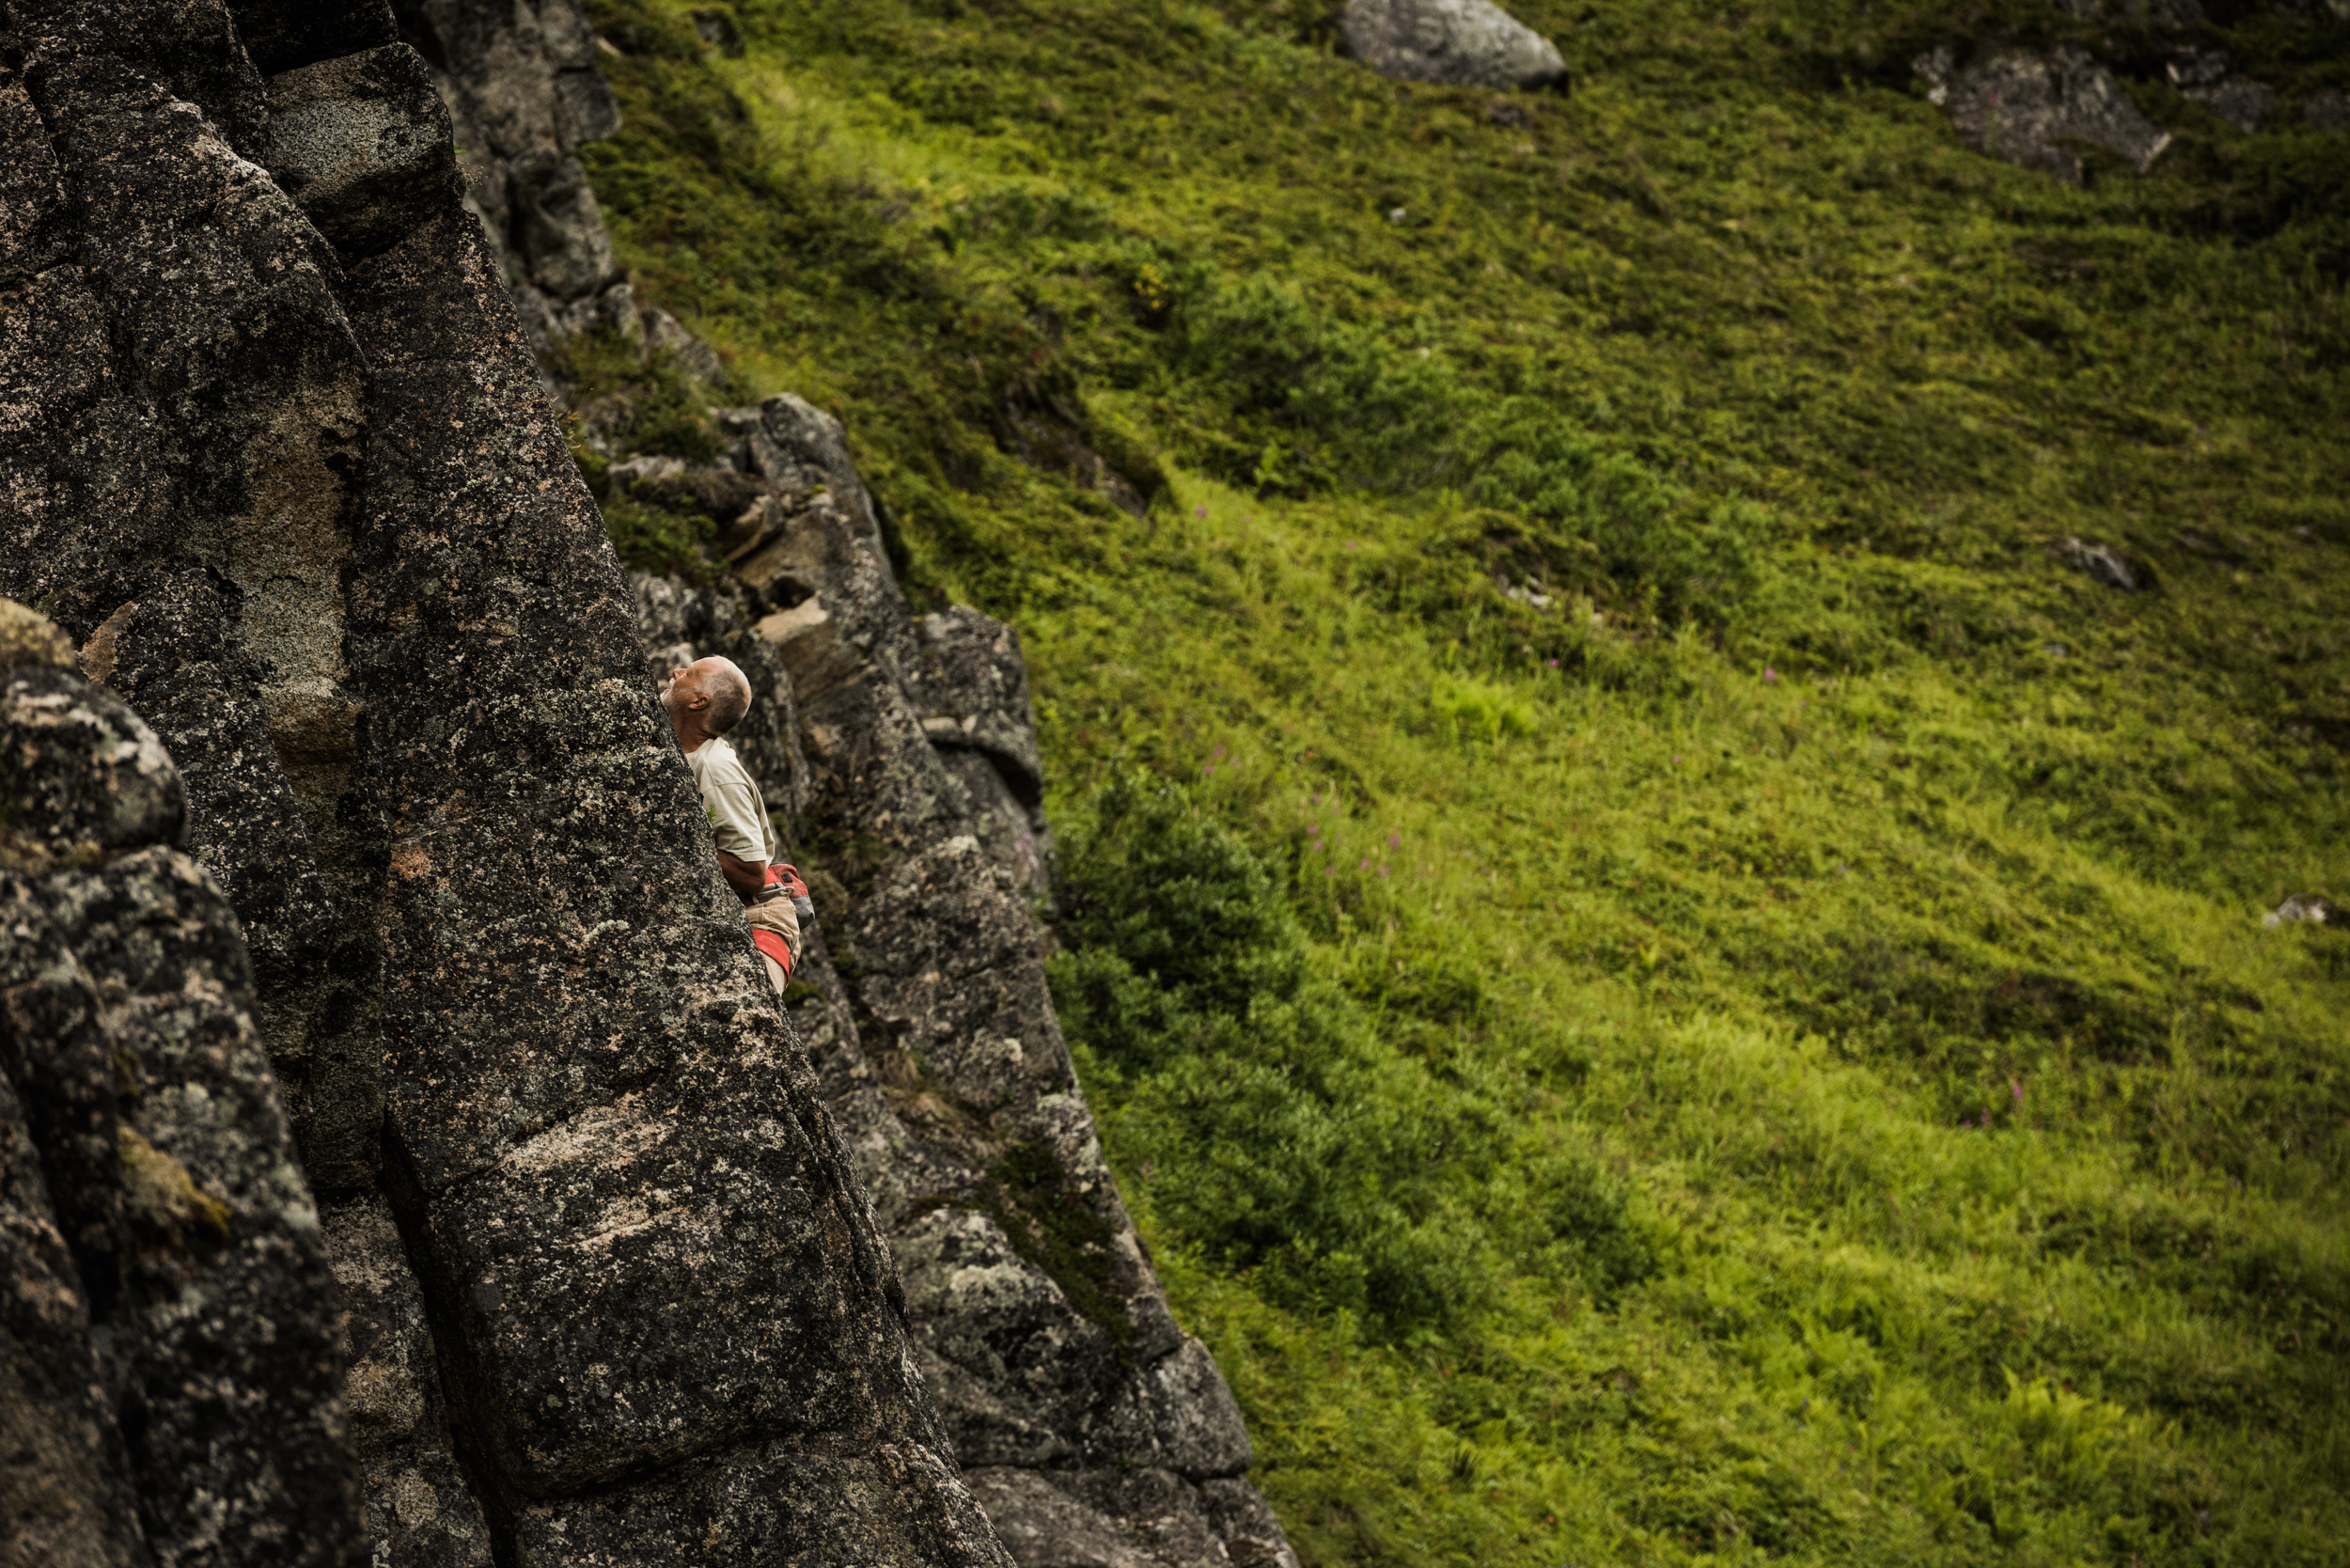 TaraShupe_Photography_Alaska_RockClimbing_HatchersPass_Travel_Photographer_Women_Adventure_038.jpg